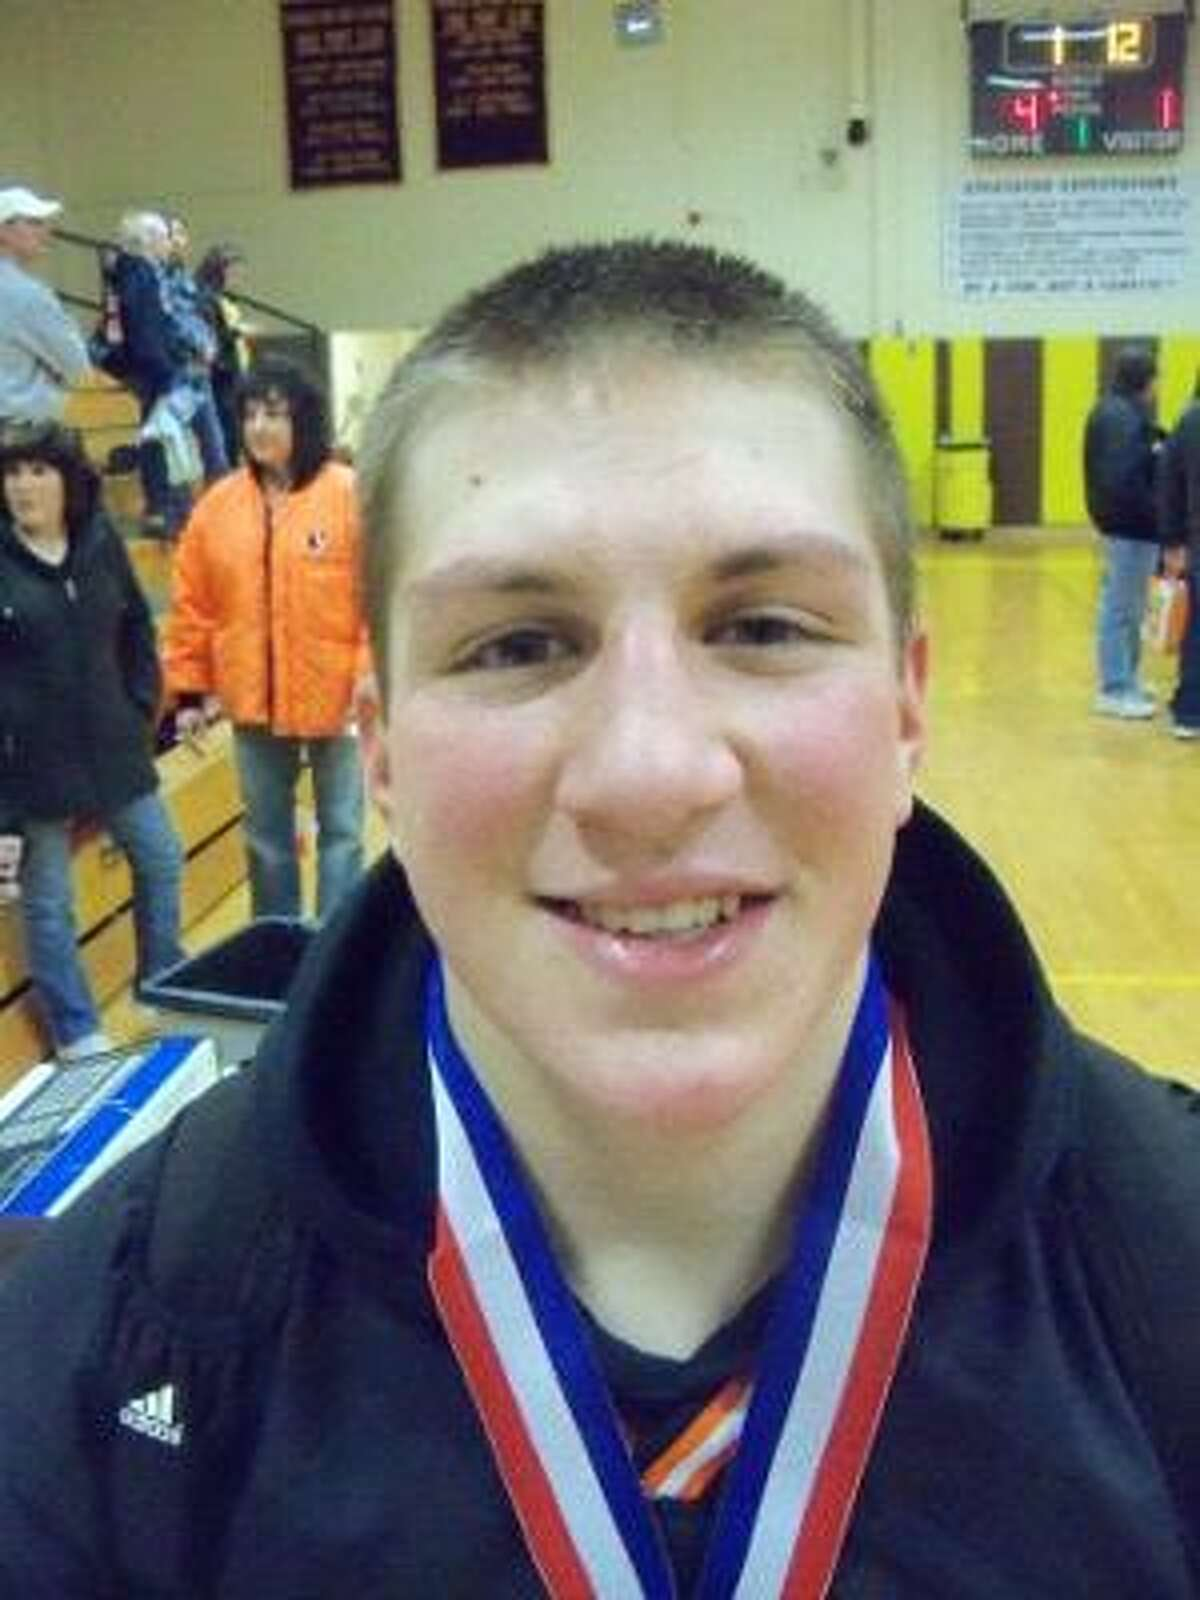 PETER WALLACE/Register Citizen Terryville's Scott LaMarre is shown Saturday at Thomaston High School. LaMarre won the Berkshire League title at 160 pounds. Terryville captured the Berkshire League tournament championship for the first time since 1987.